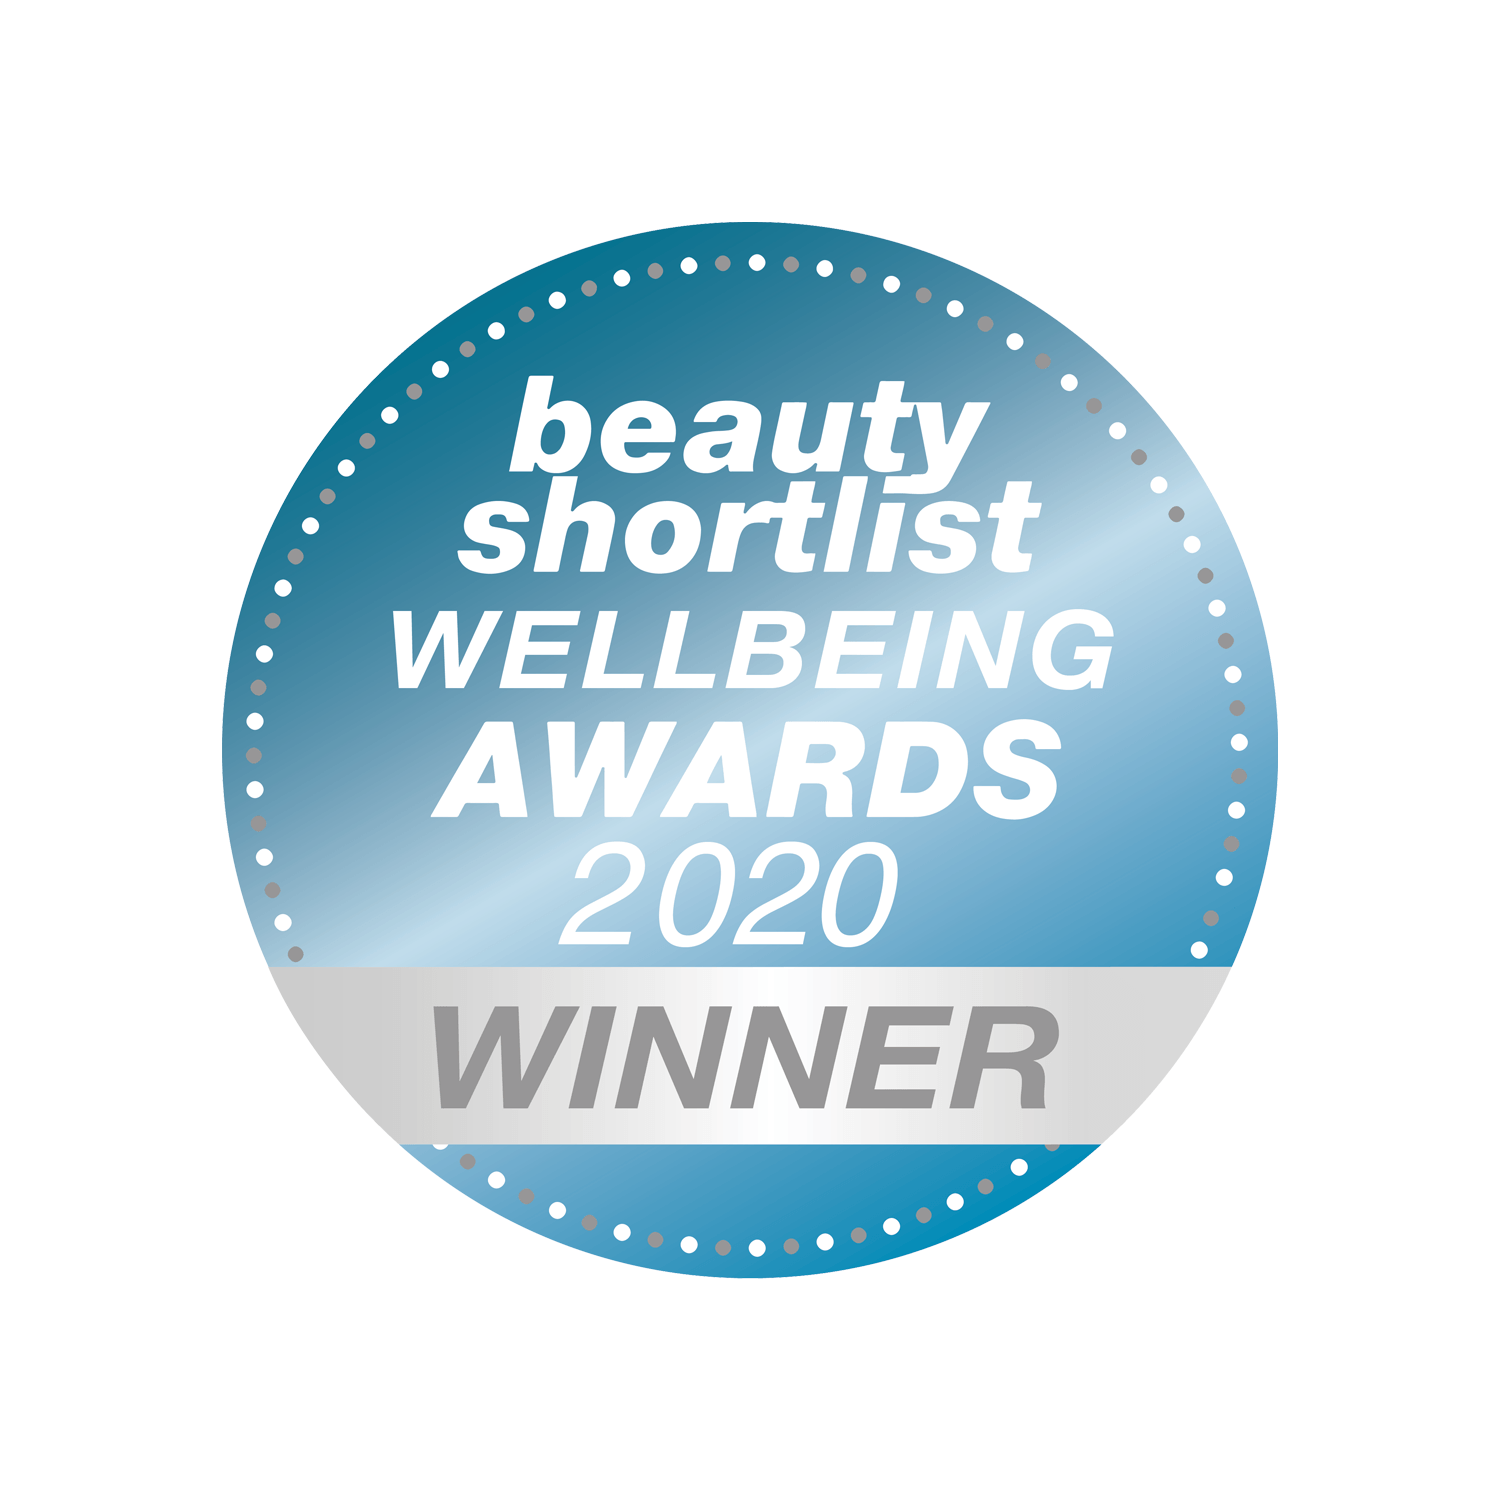 Best Pillow Mist - Beauty Shortlist Wellbeing Awards Winner 2020 - 3-in-1 Soul Mist - The Universal Soul Company